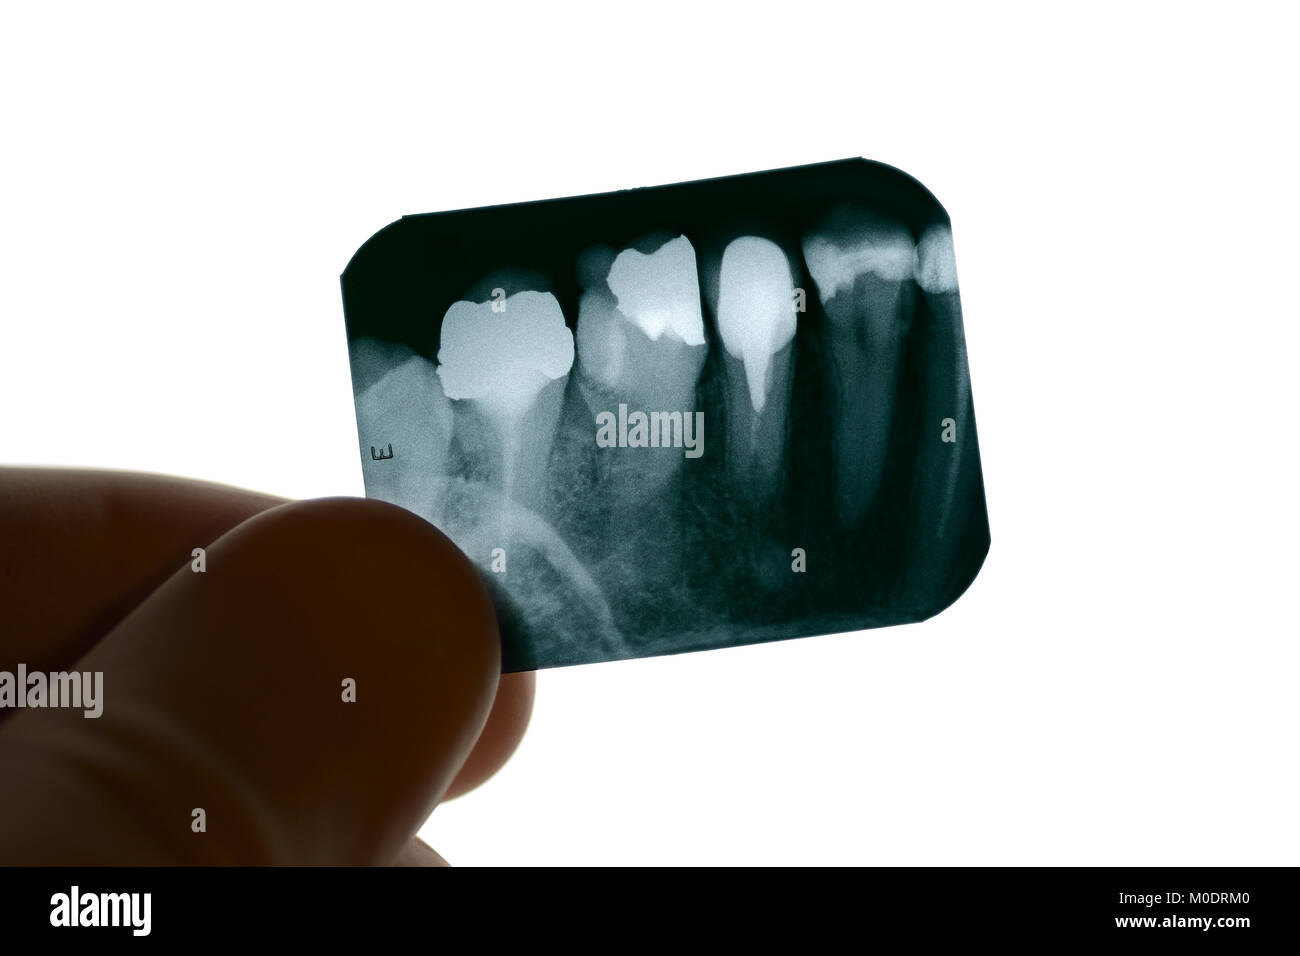 Dental X-ray Being Examined by a Dentist - Stock Image